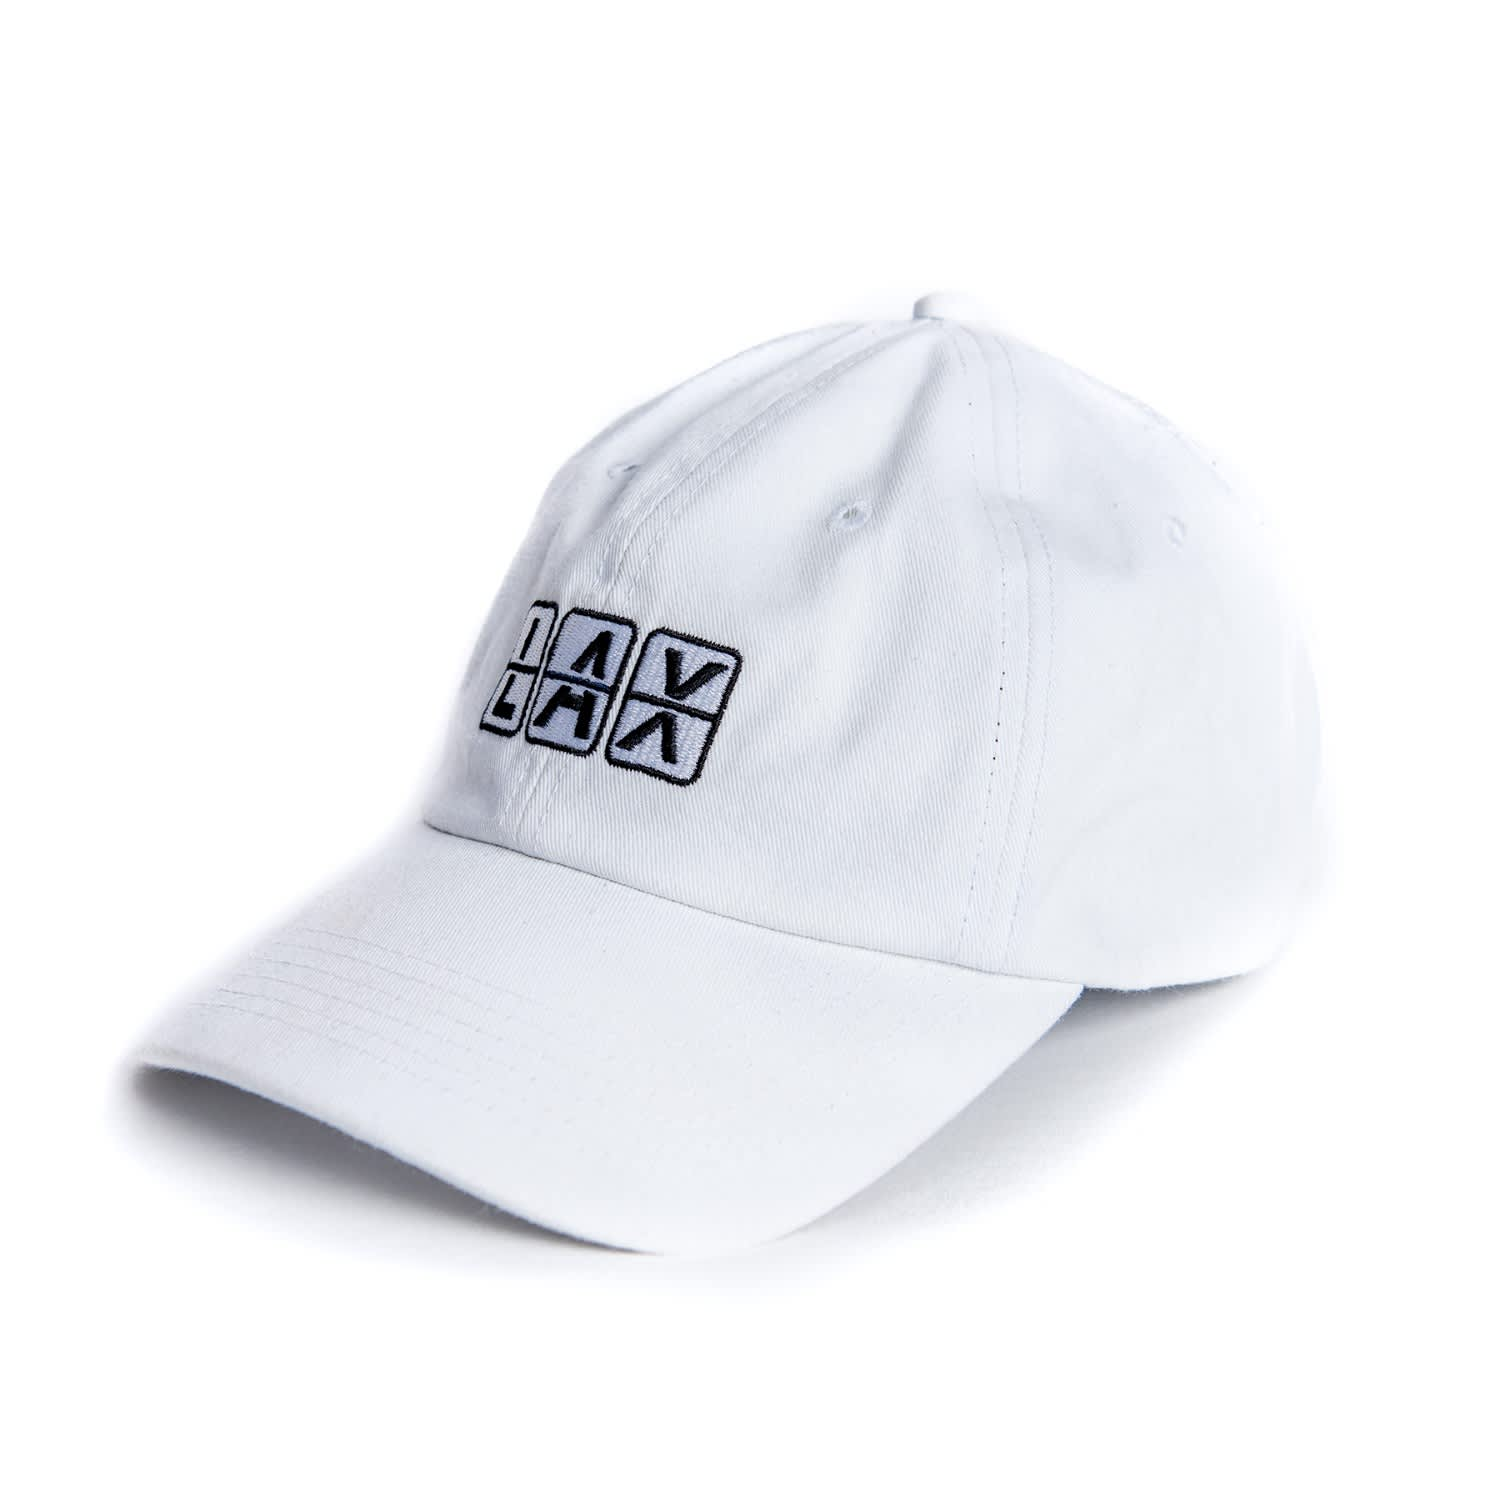 Lax Dad Hat White image 67a9d1cb0a7f